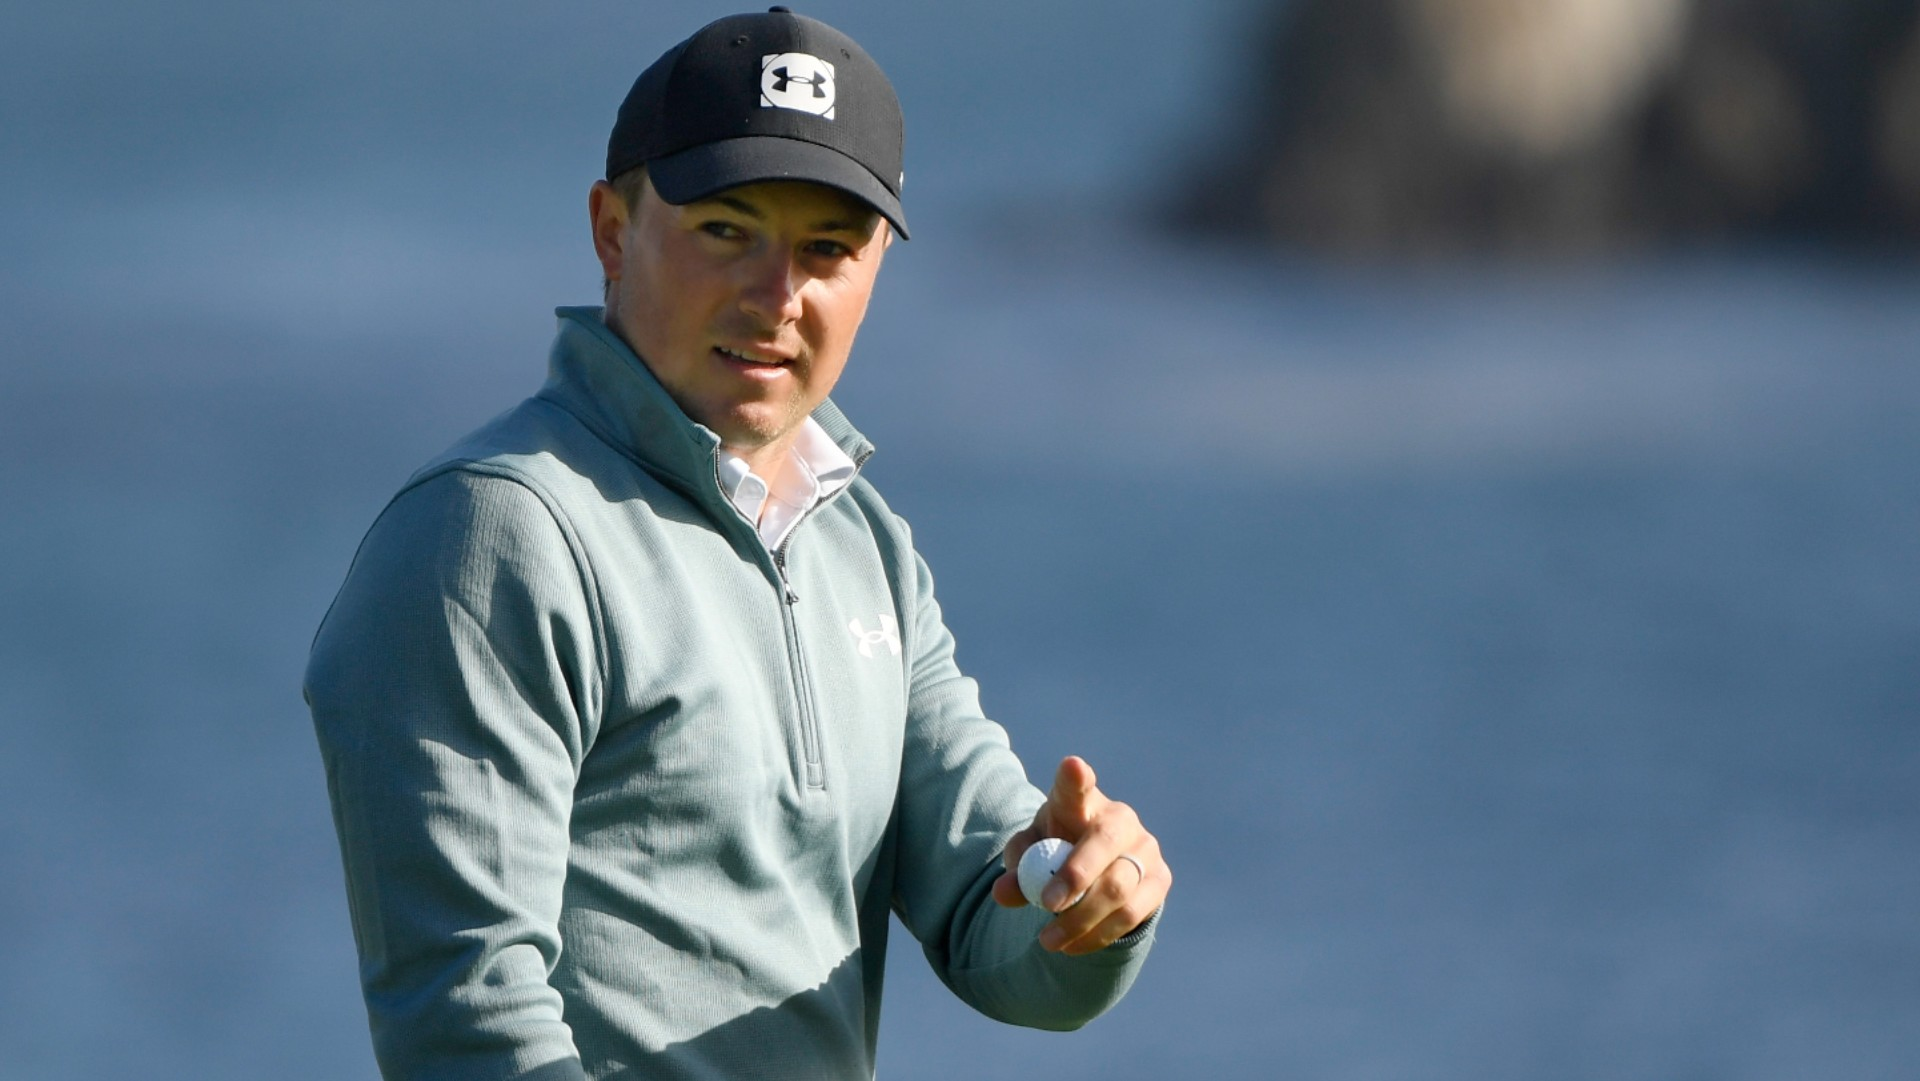 Spieth extends Pebble Beach lead to move within touching distance of drought-ending title